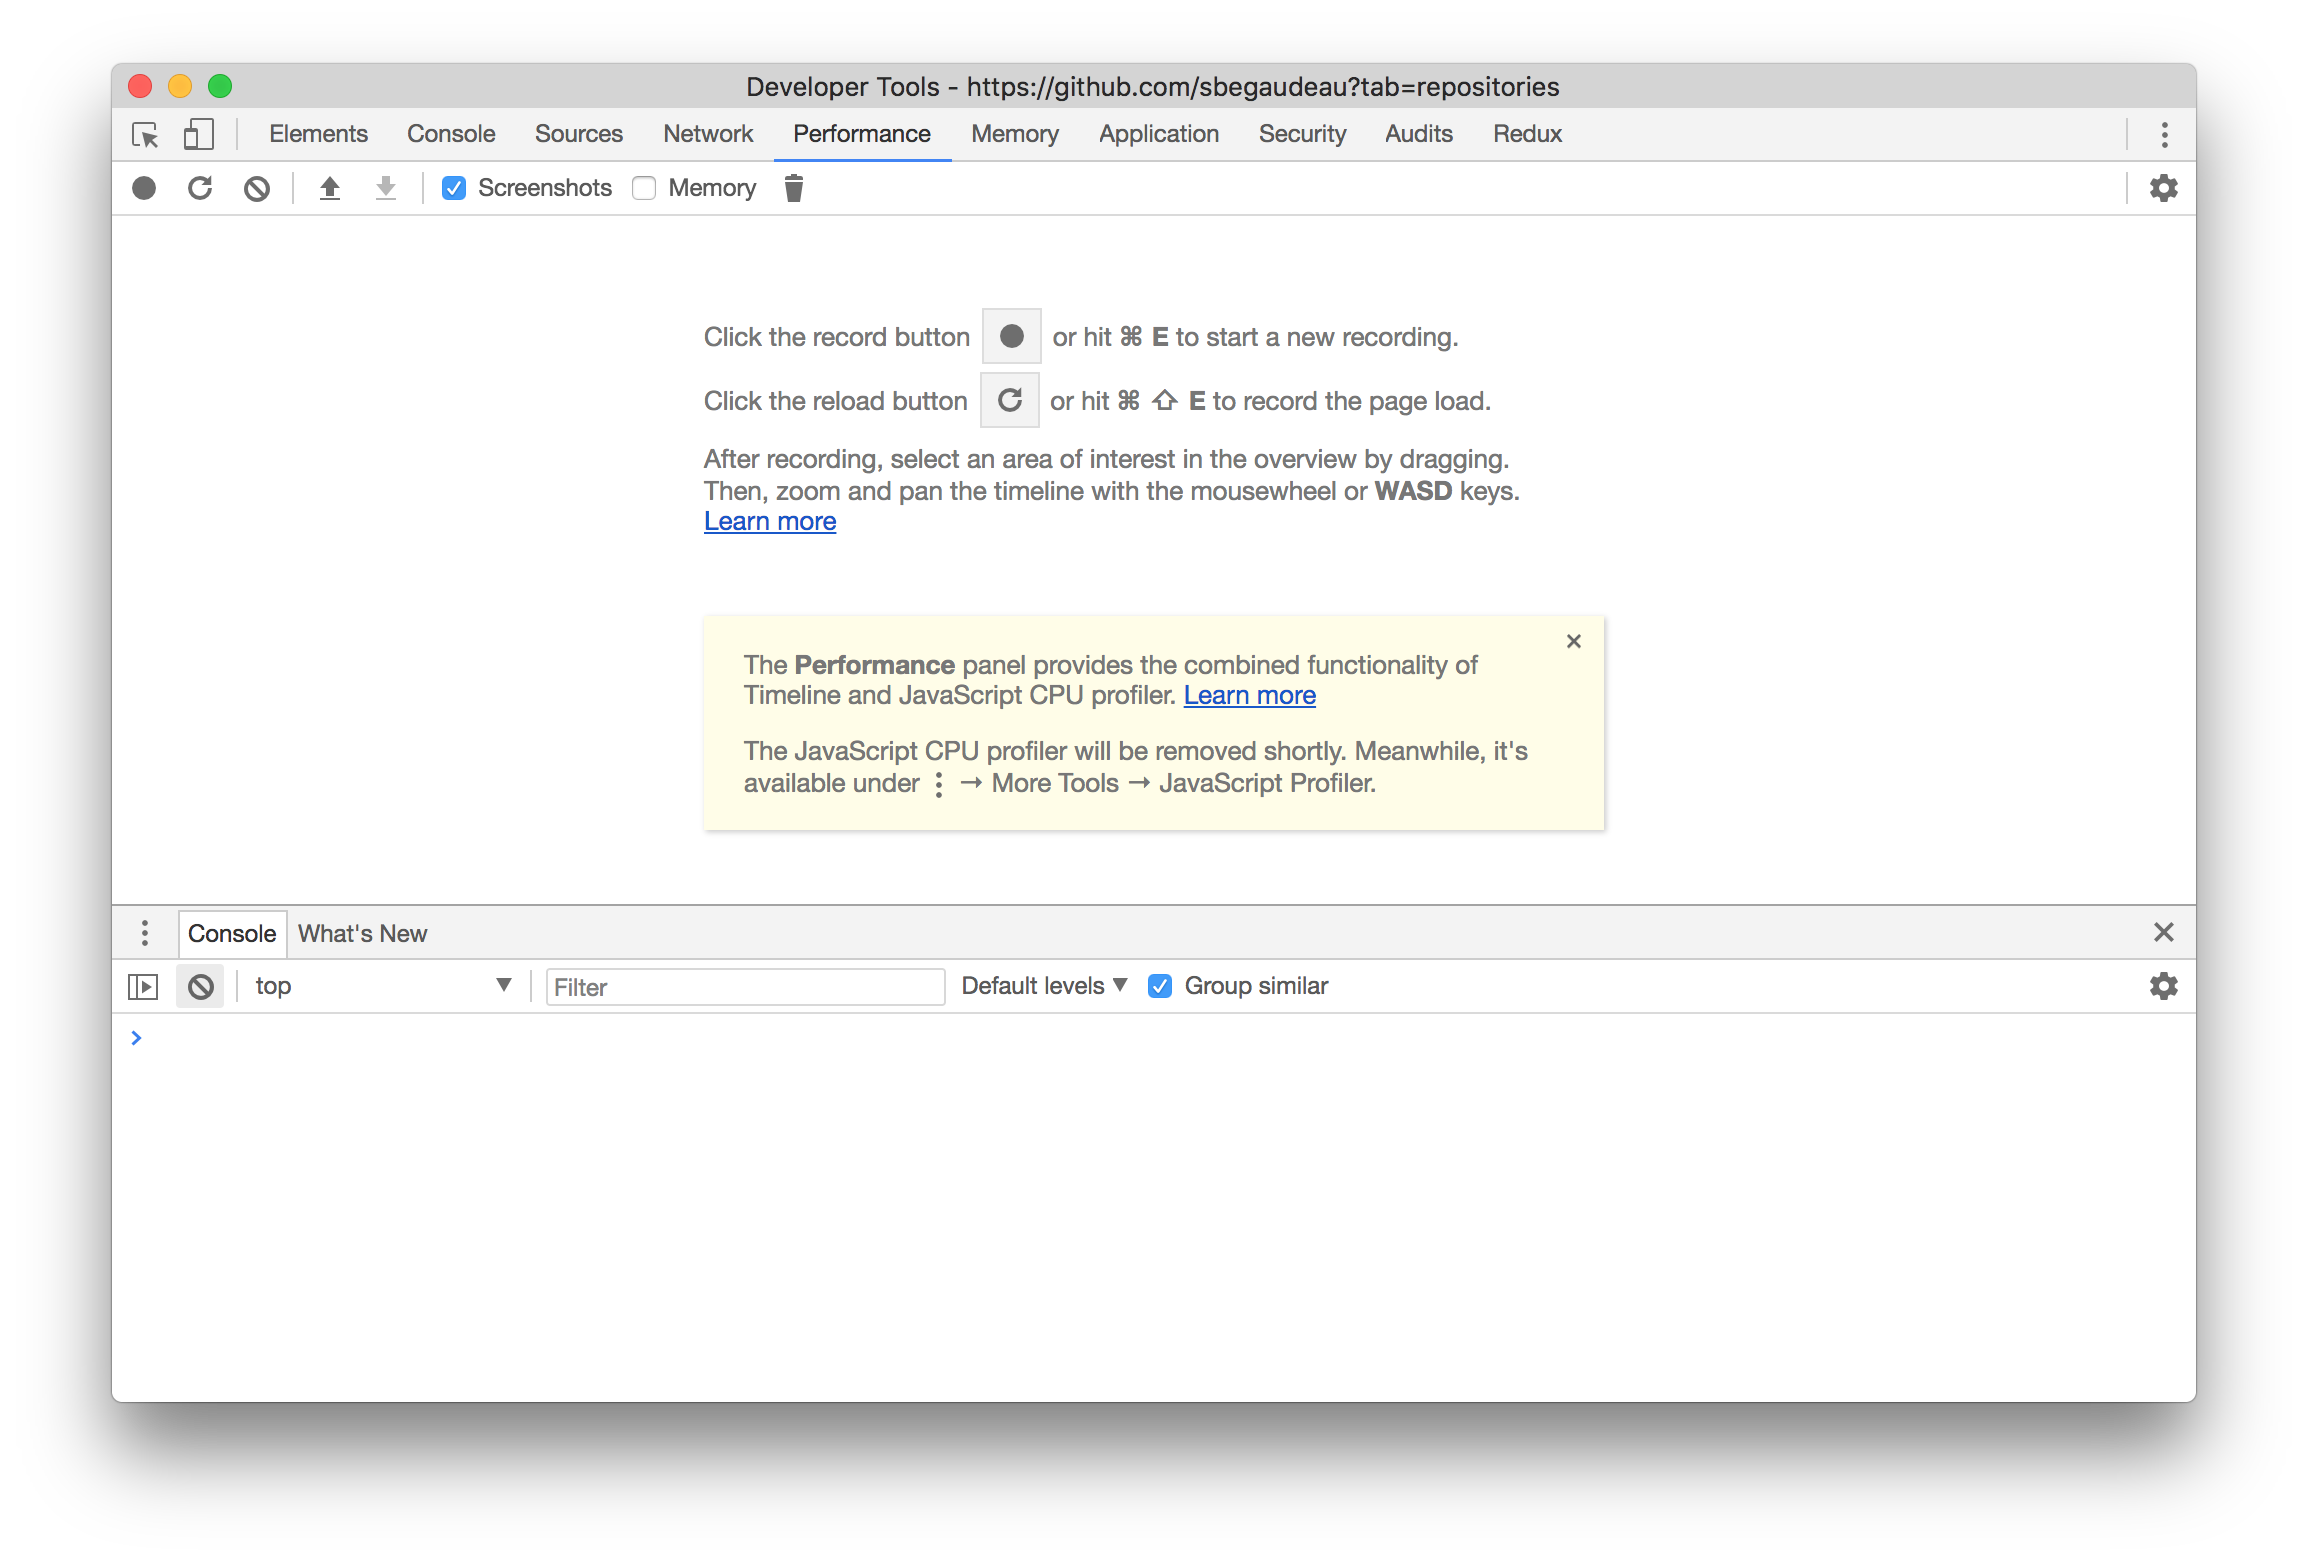 Chrome Devtools - Part 5